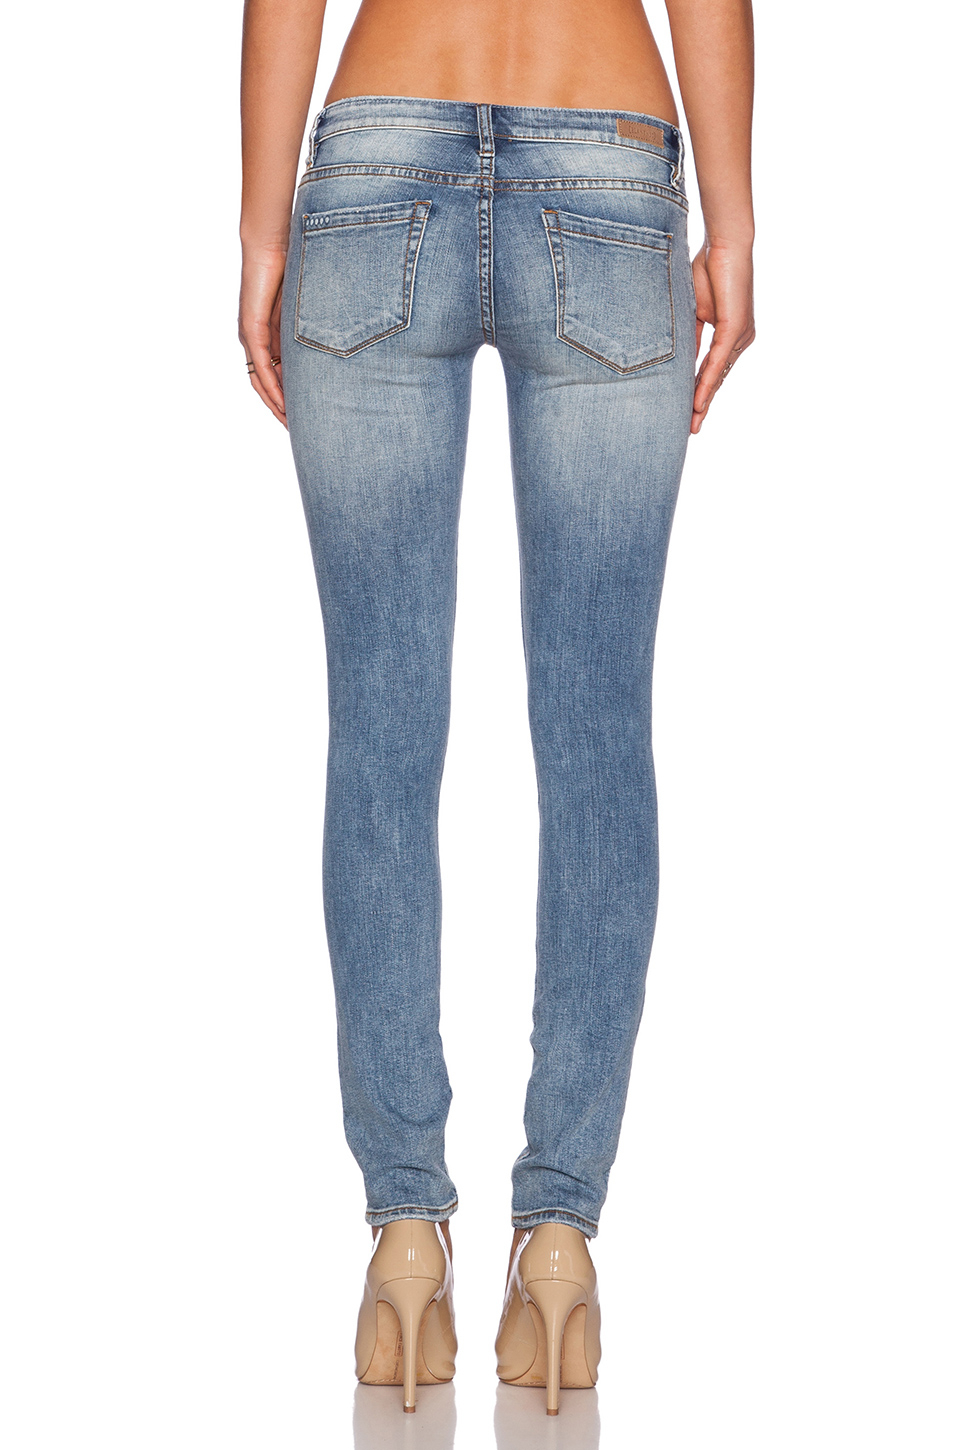 Shop New Women's Jeans from BLANKNYC at South Moon Under. Free Shipping on Orders Over $!